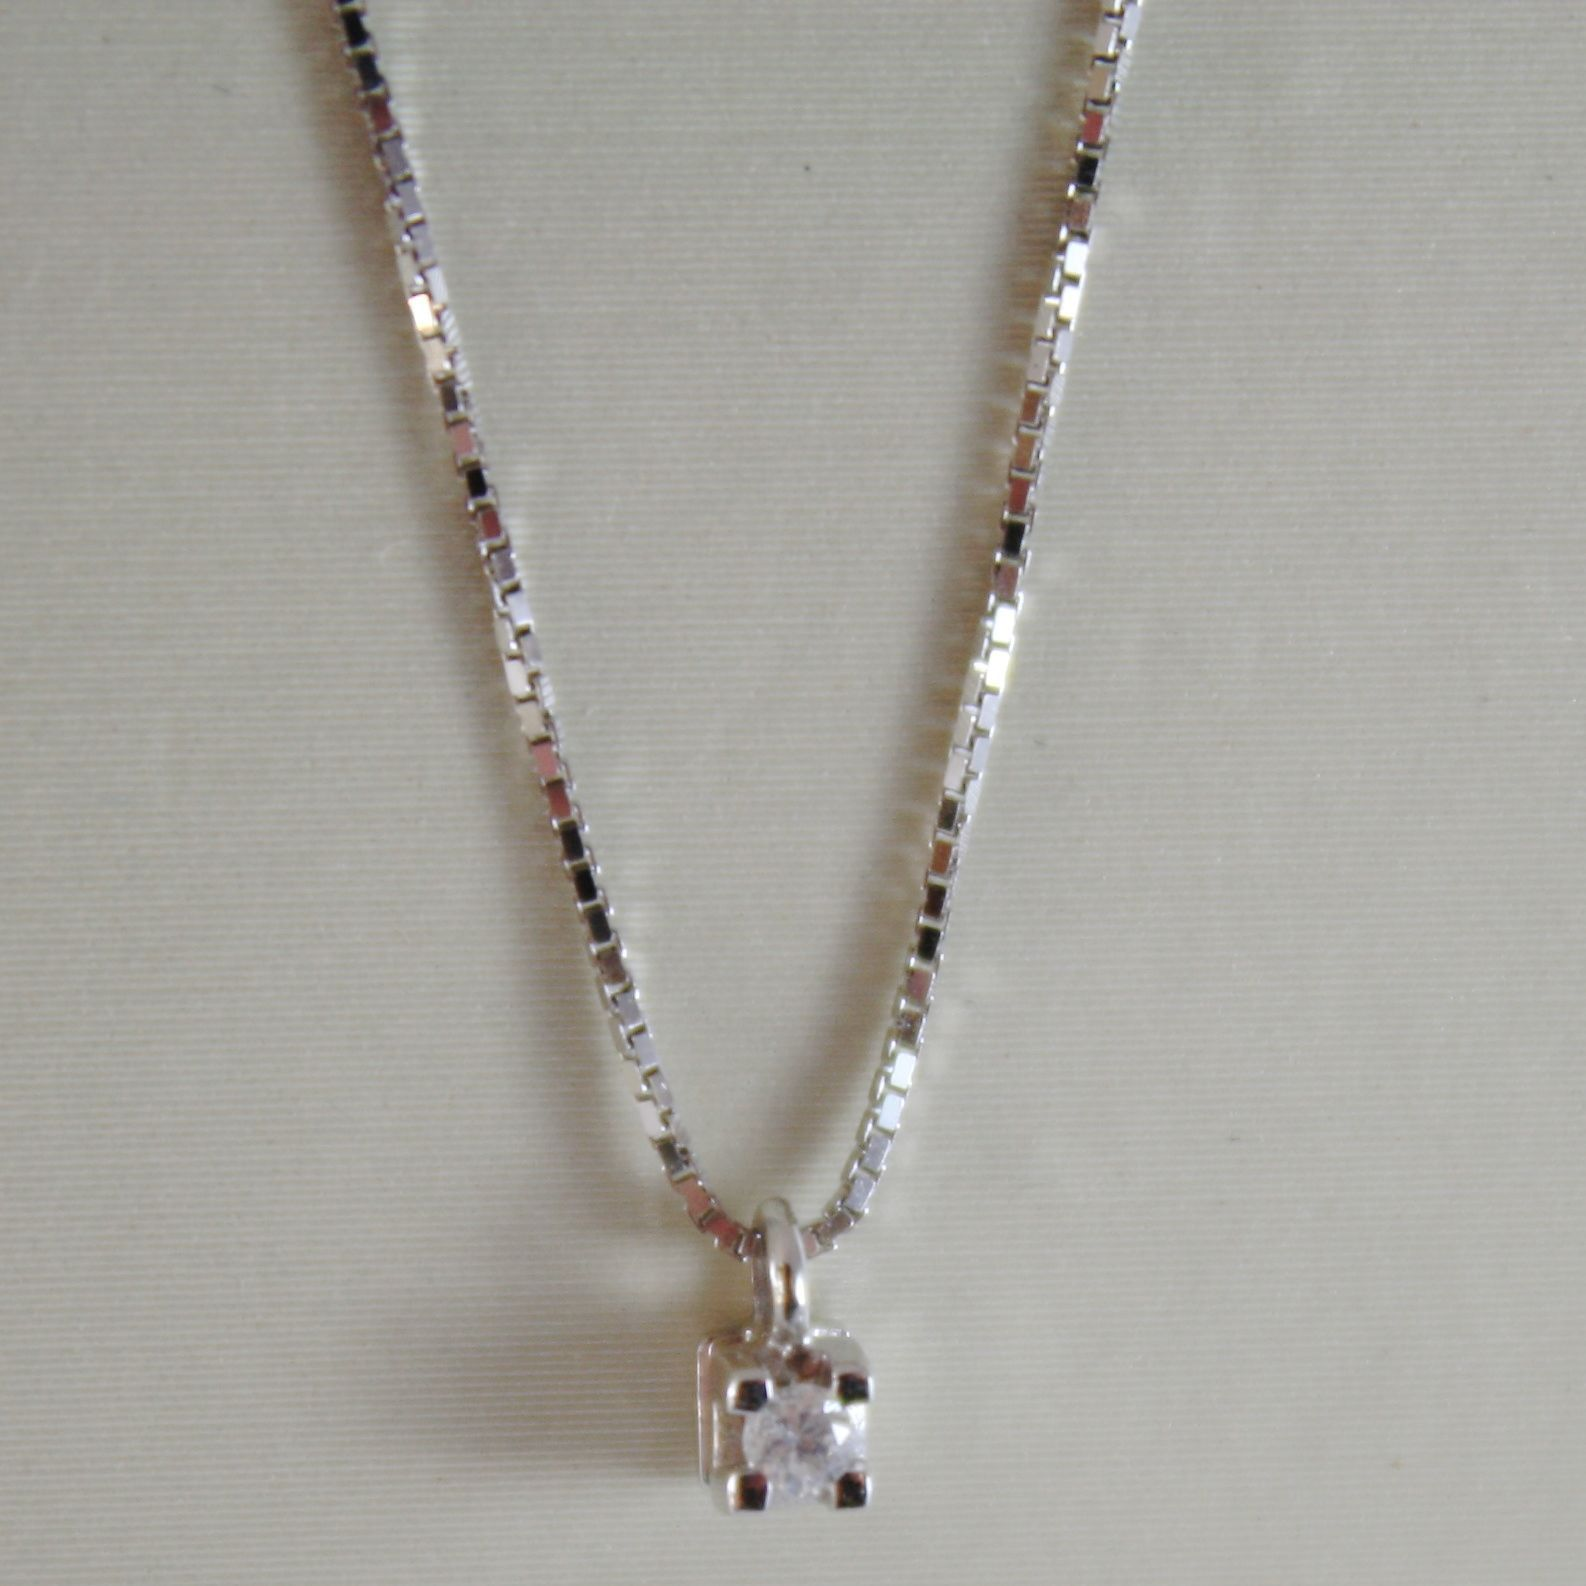 18K WHITE GOLD MINI NECKLACE WITH DIAMOND 0.03 CT, VENETIAN CHAIN MADE IN ITALY